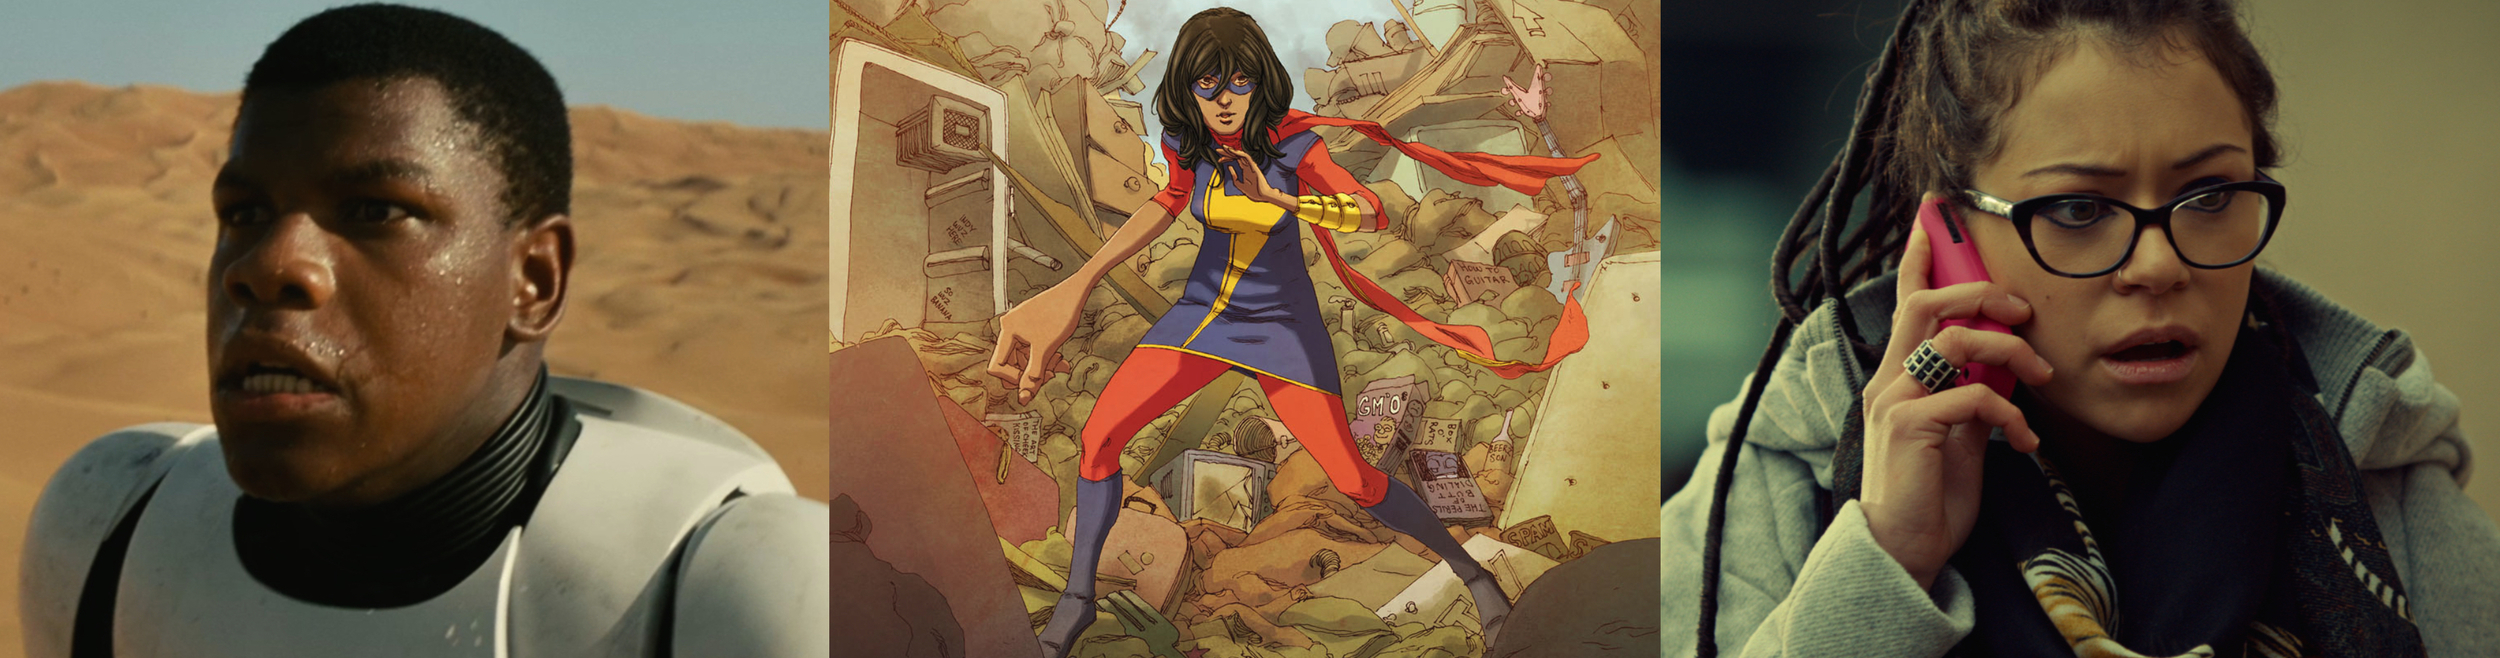 Star Wars: The Force Awaken's John Boyega, Ms. Marvel (Kamala Khan), Orphan Black's Cosima